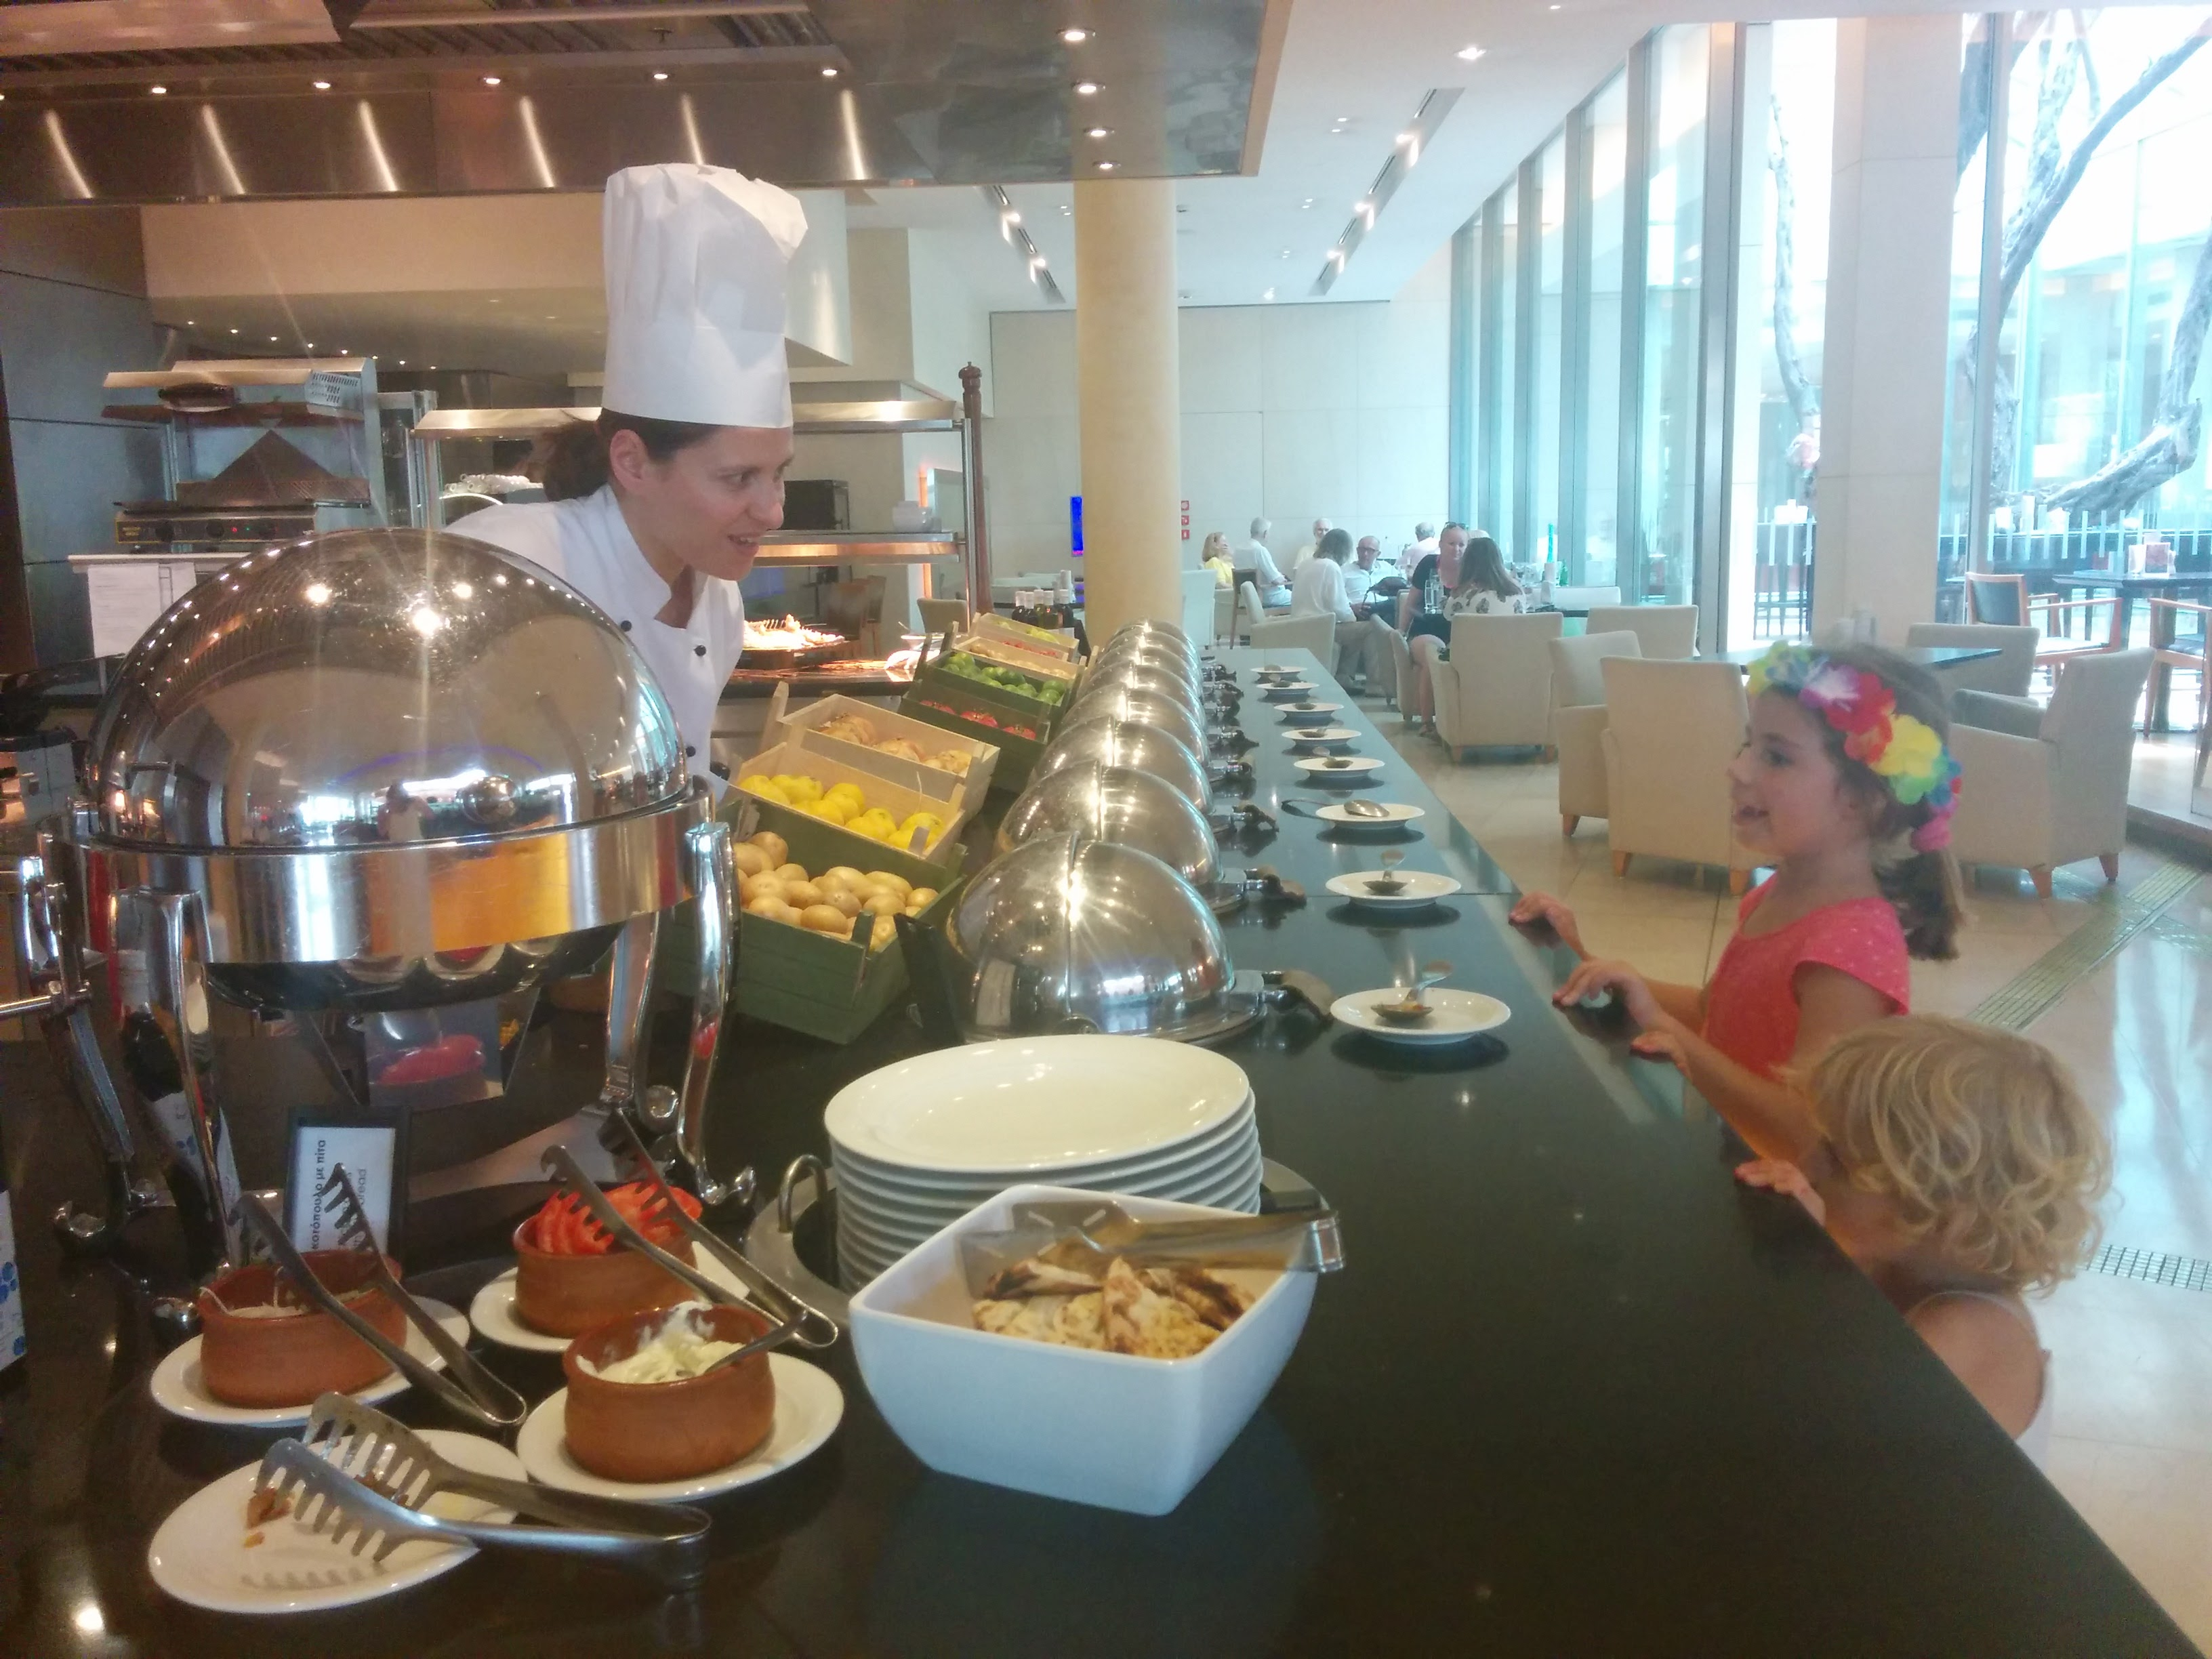 Hilton Athens Hotel Sunday Family Lunch With Kids Review